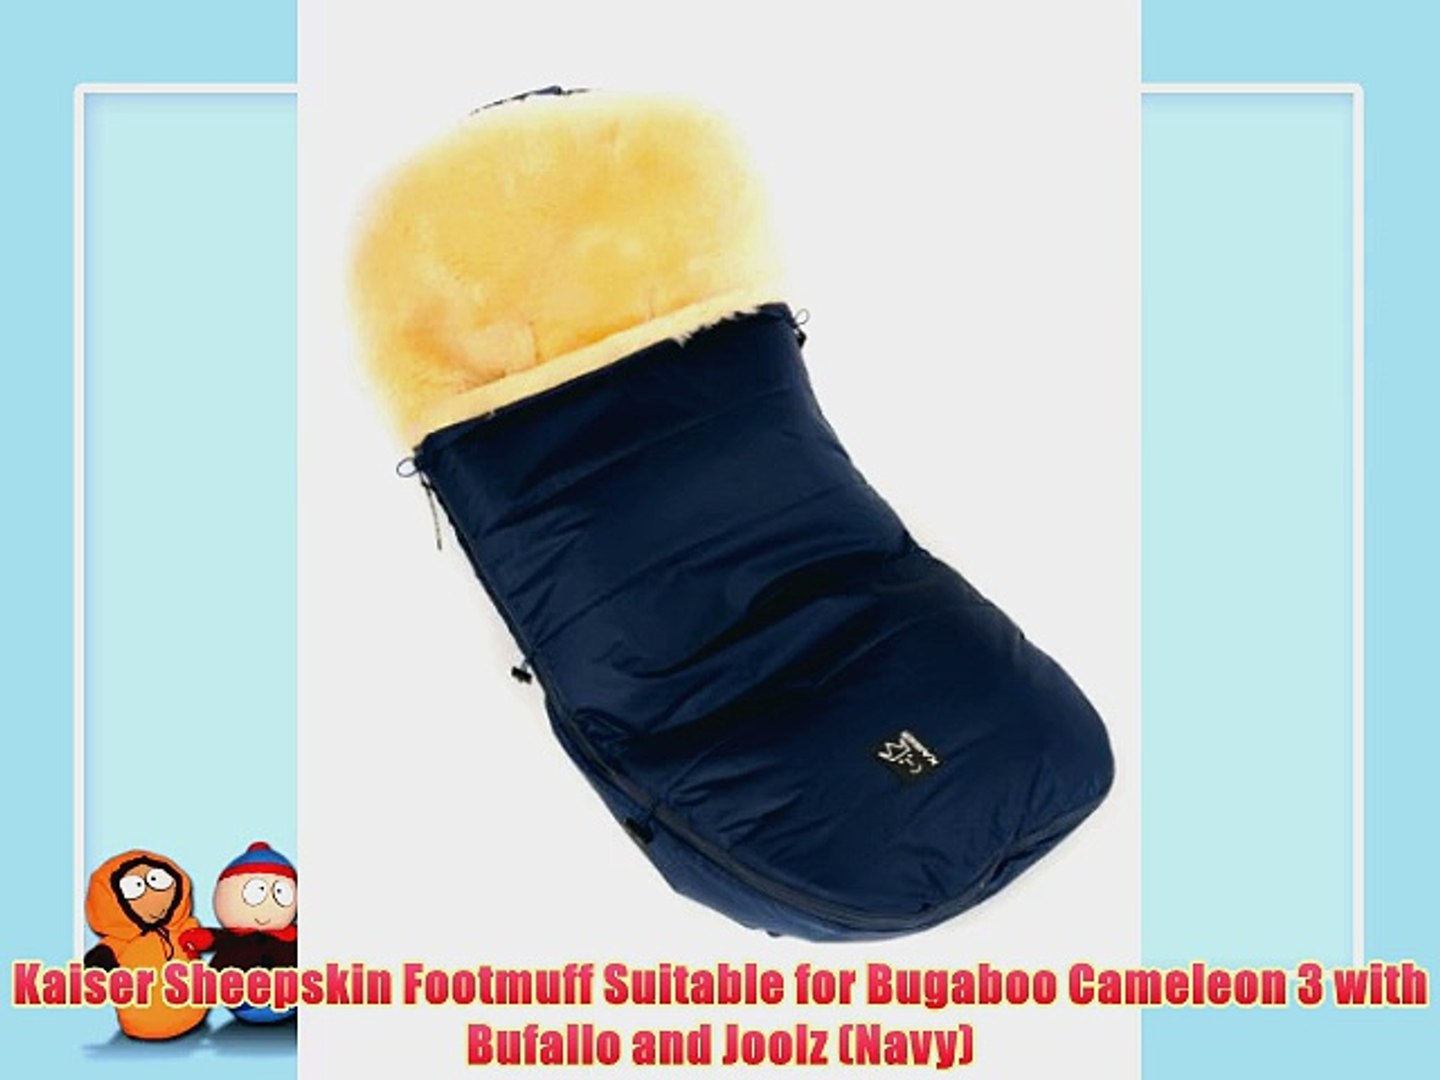 Poussette Bugaboo Cameleon 3 Kaiser Sheepskin Footmuff Suitable For Bugaboo Cameleon 3 With Bufallo And Joolz Navy